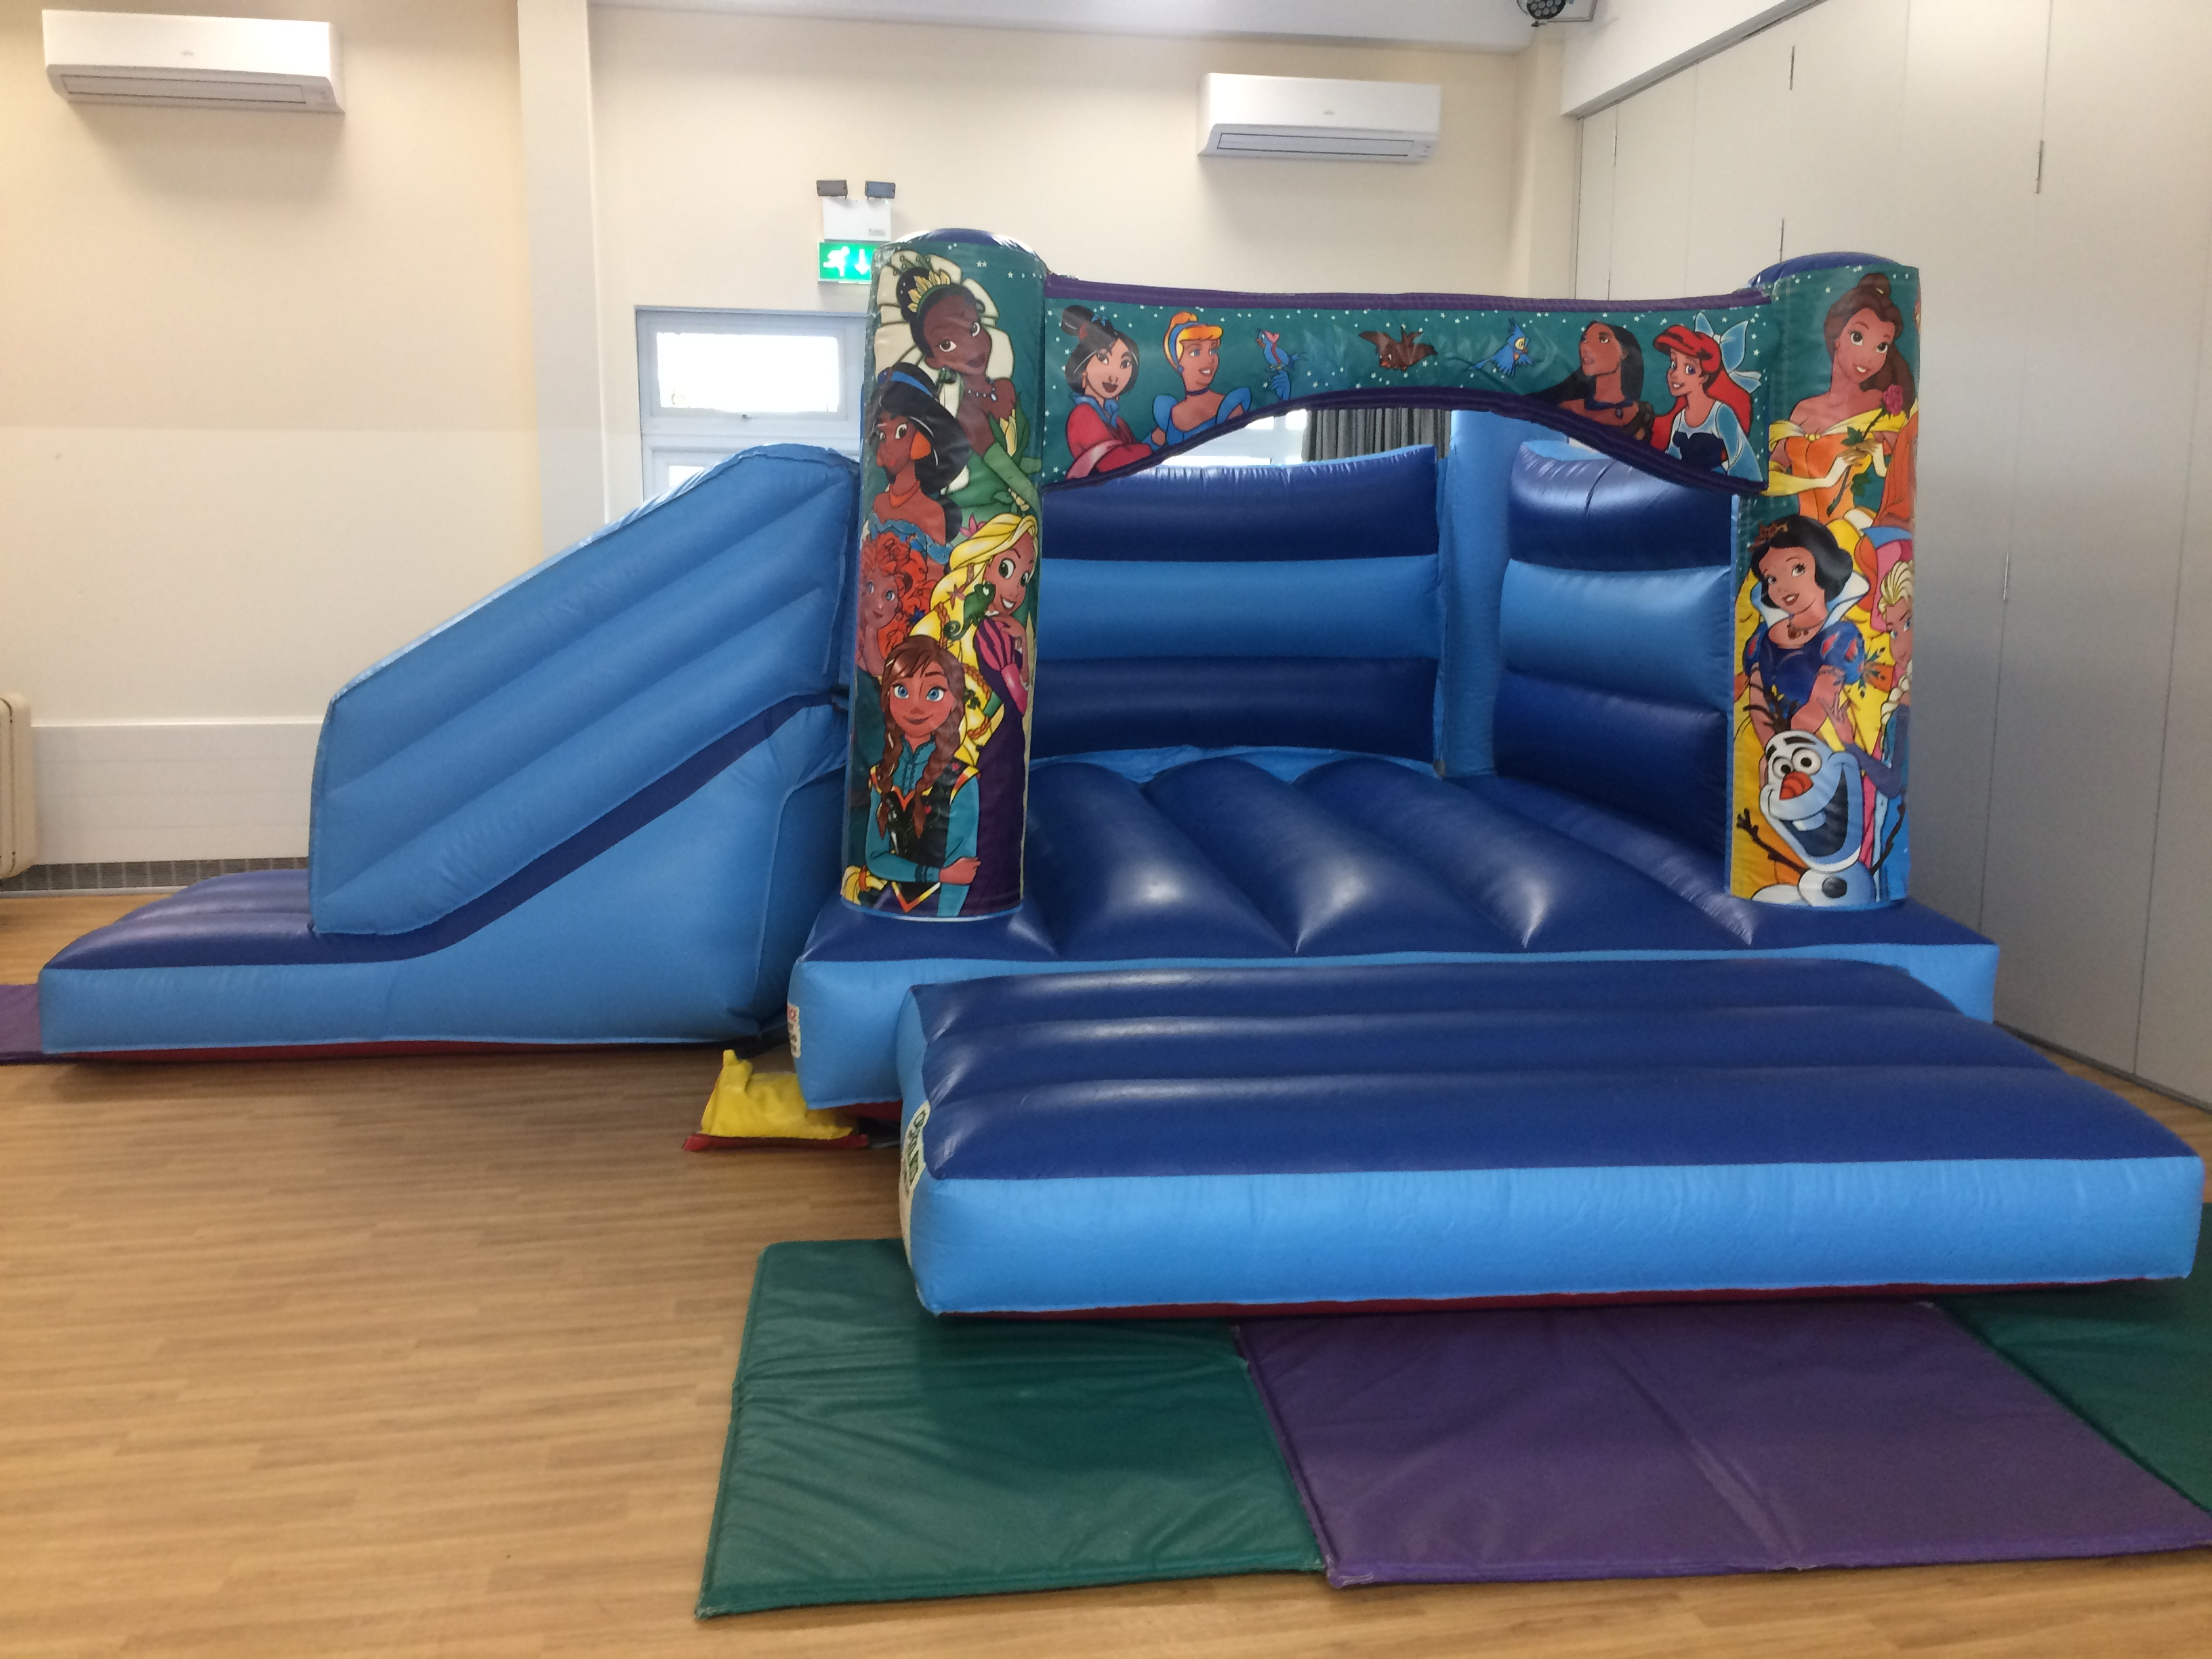 Blue Princess Combo Bounce and Slide Bouncy Castle